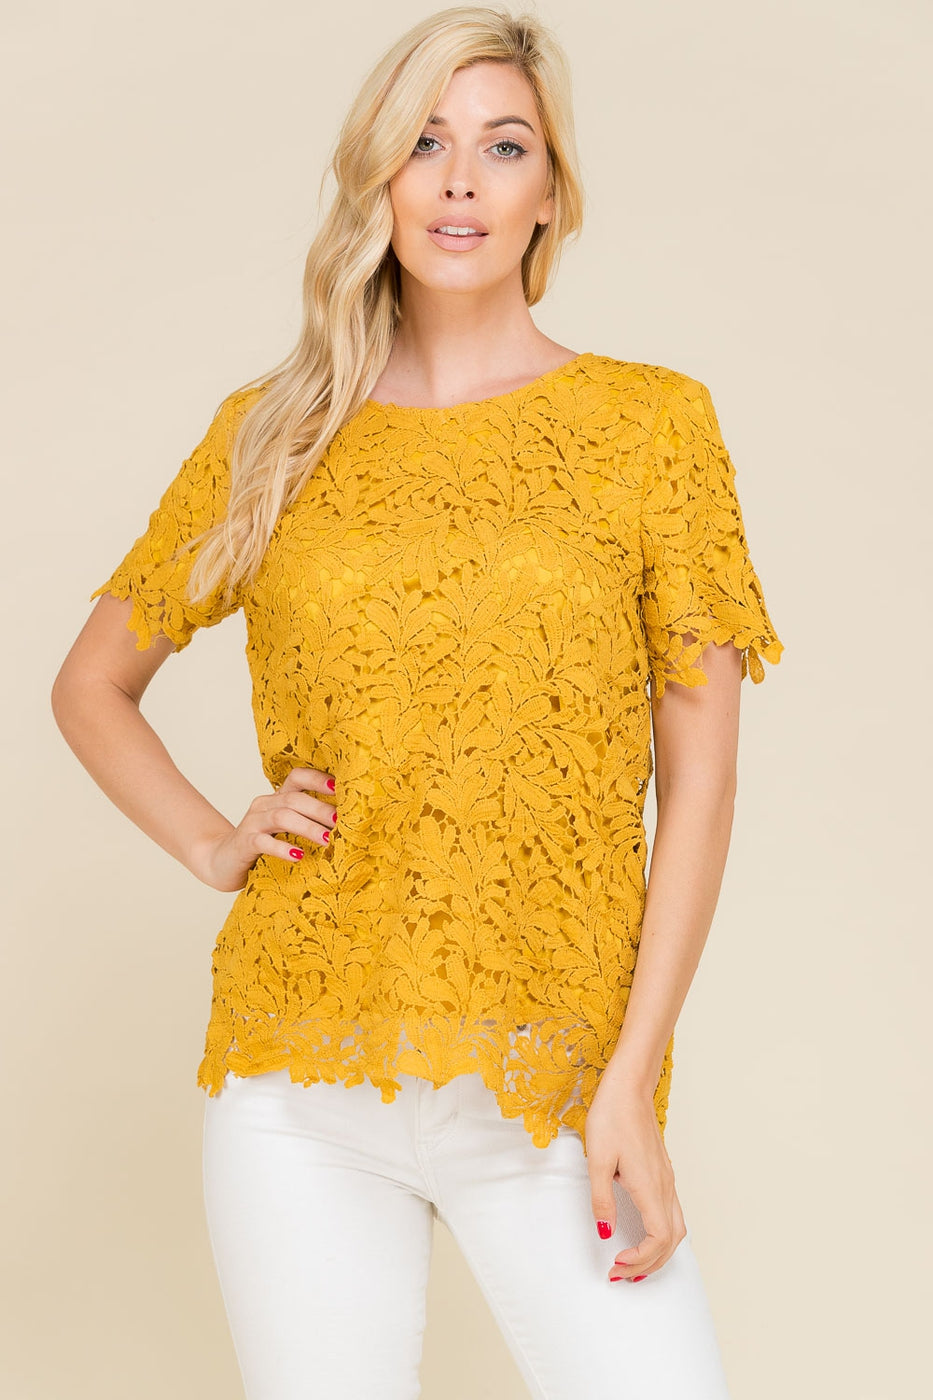 Crochet Short Sleeve Lace Top In Mustard Siin Bees